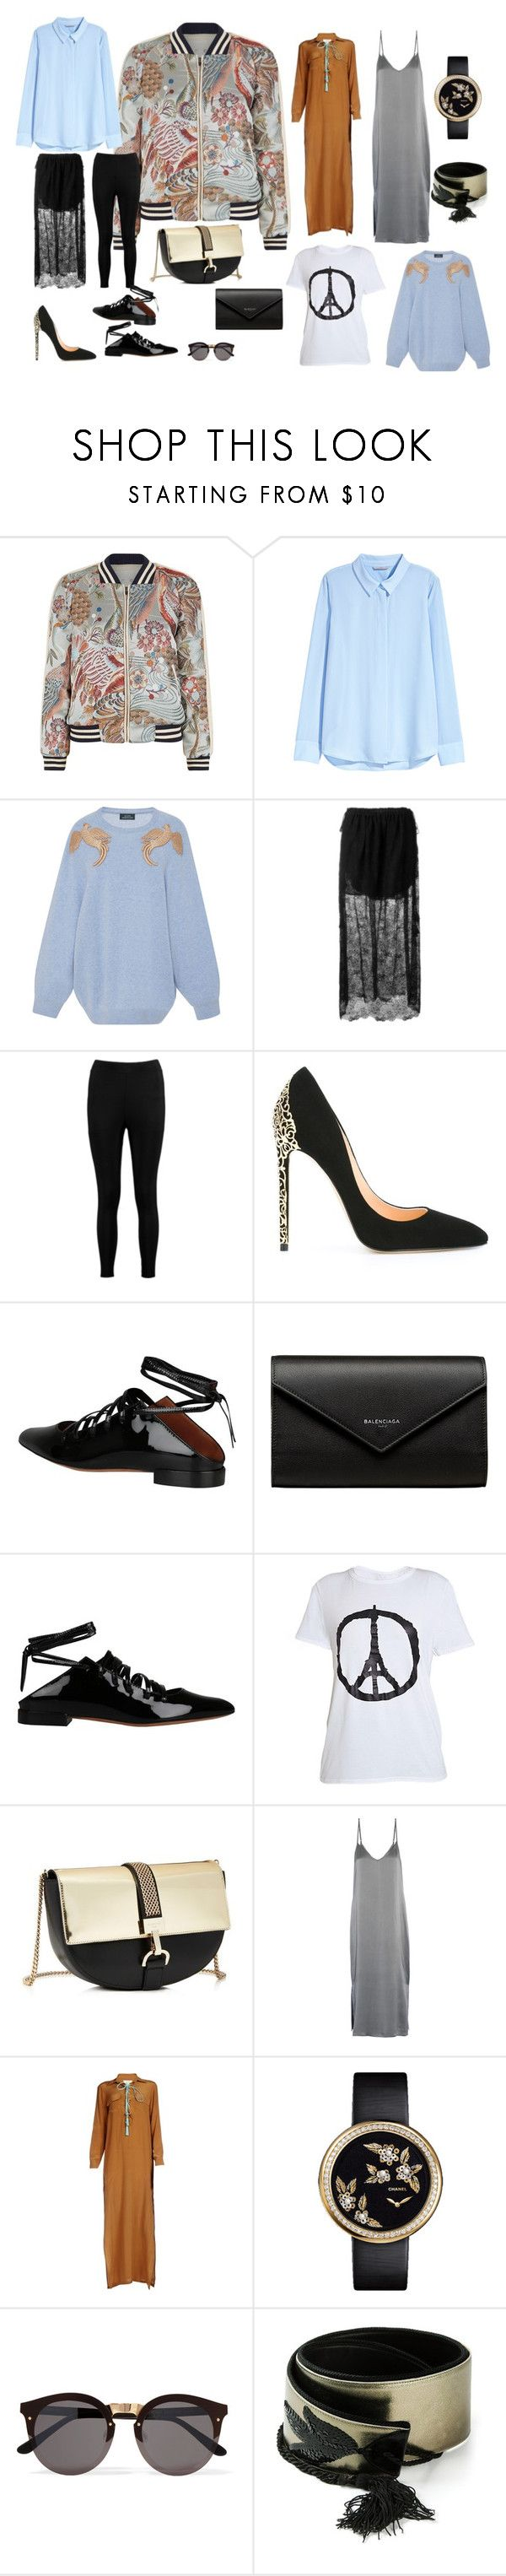 """mini capsule_multilayered"" by liveinspb on Polyvore featuring мода, Maje, H&M, Alena Akhmadullina, Chloé, Boohoo, Cerasella Milano, Givenchy, Balenciaga и Lanvin"